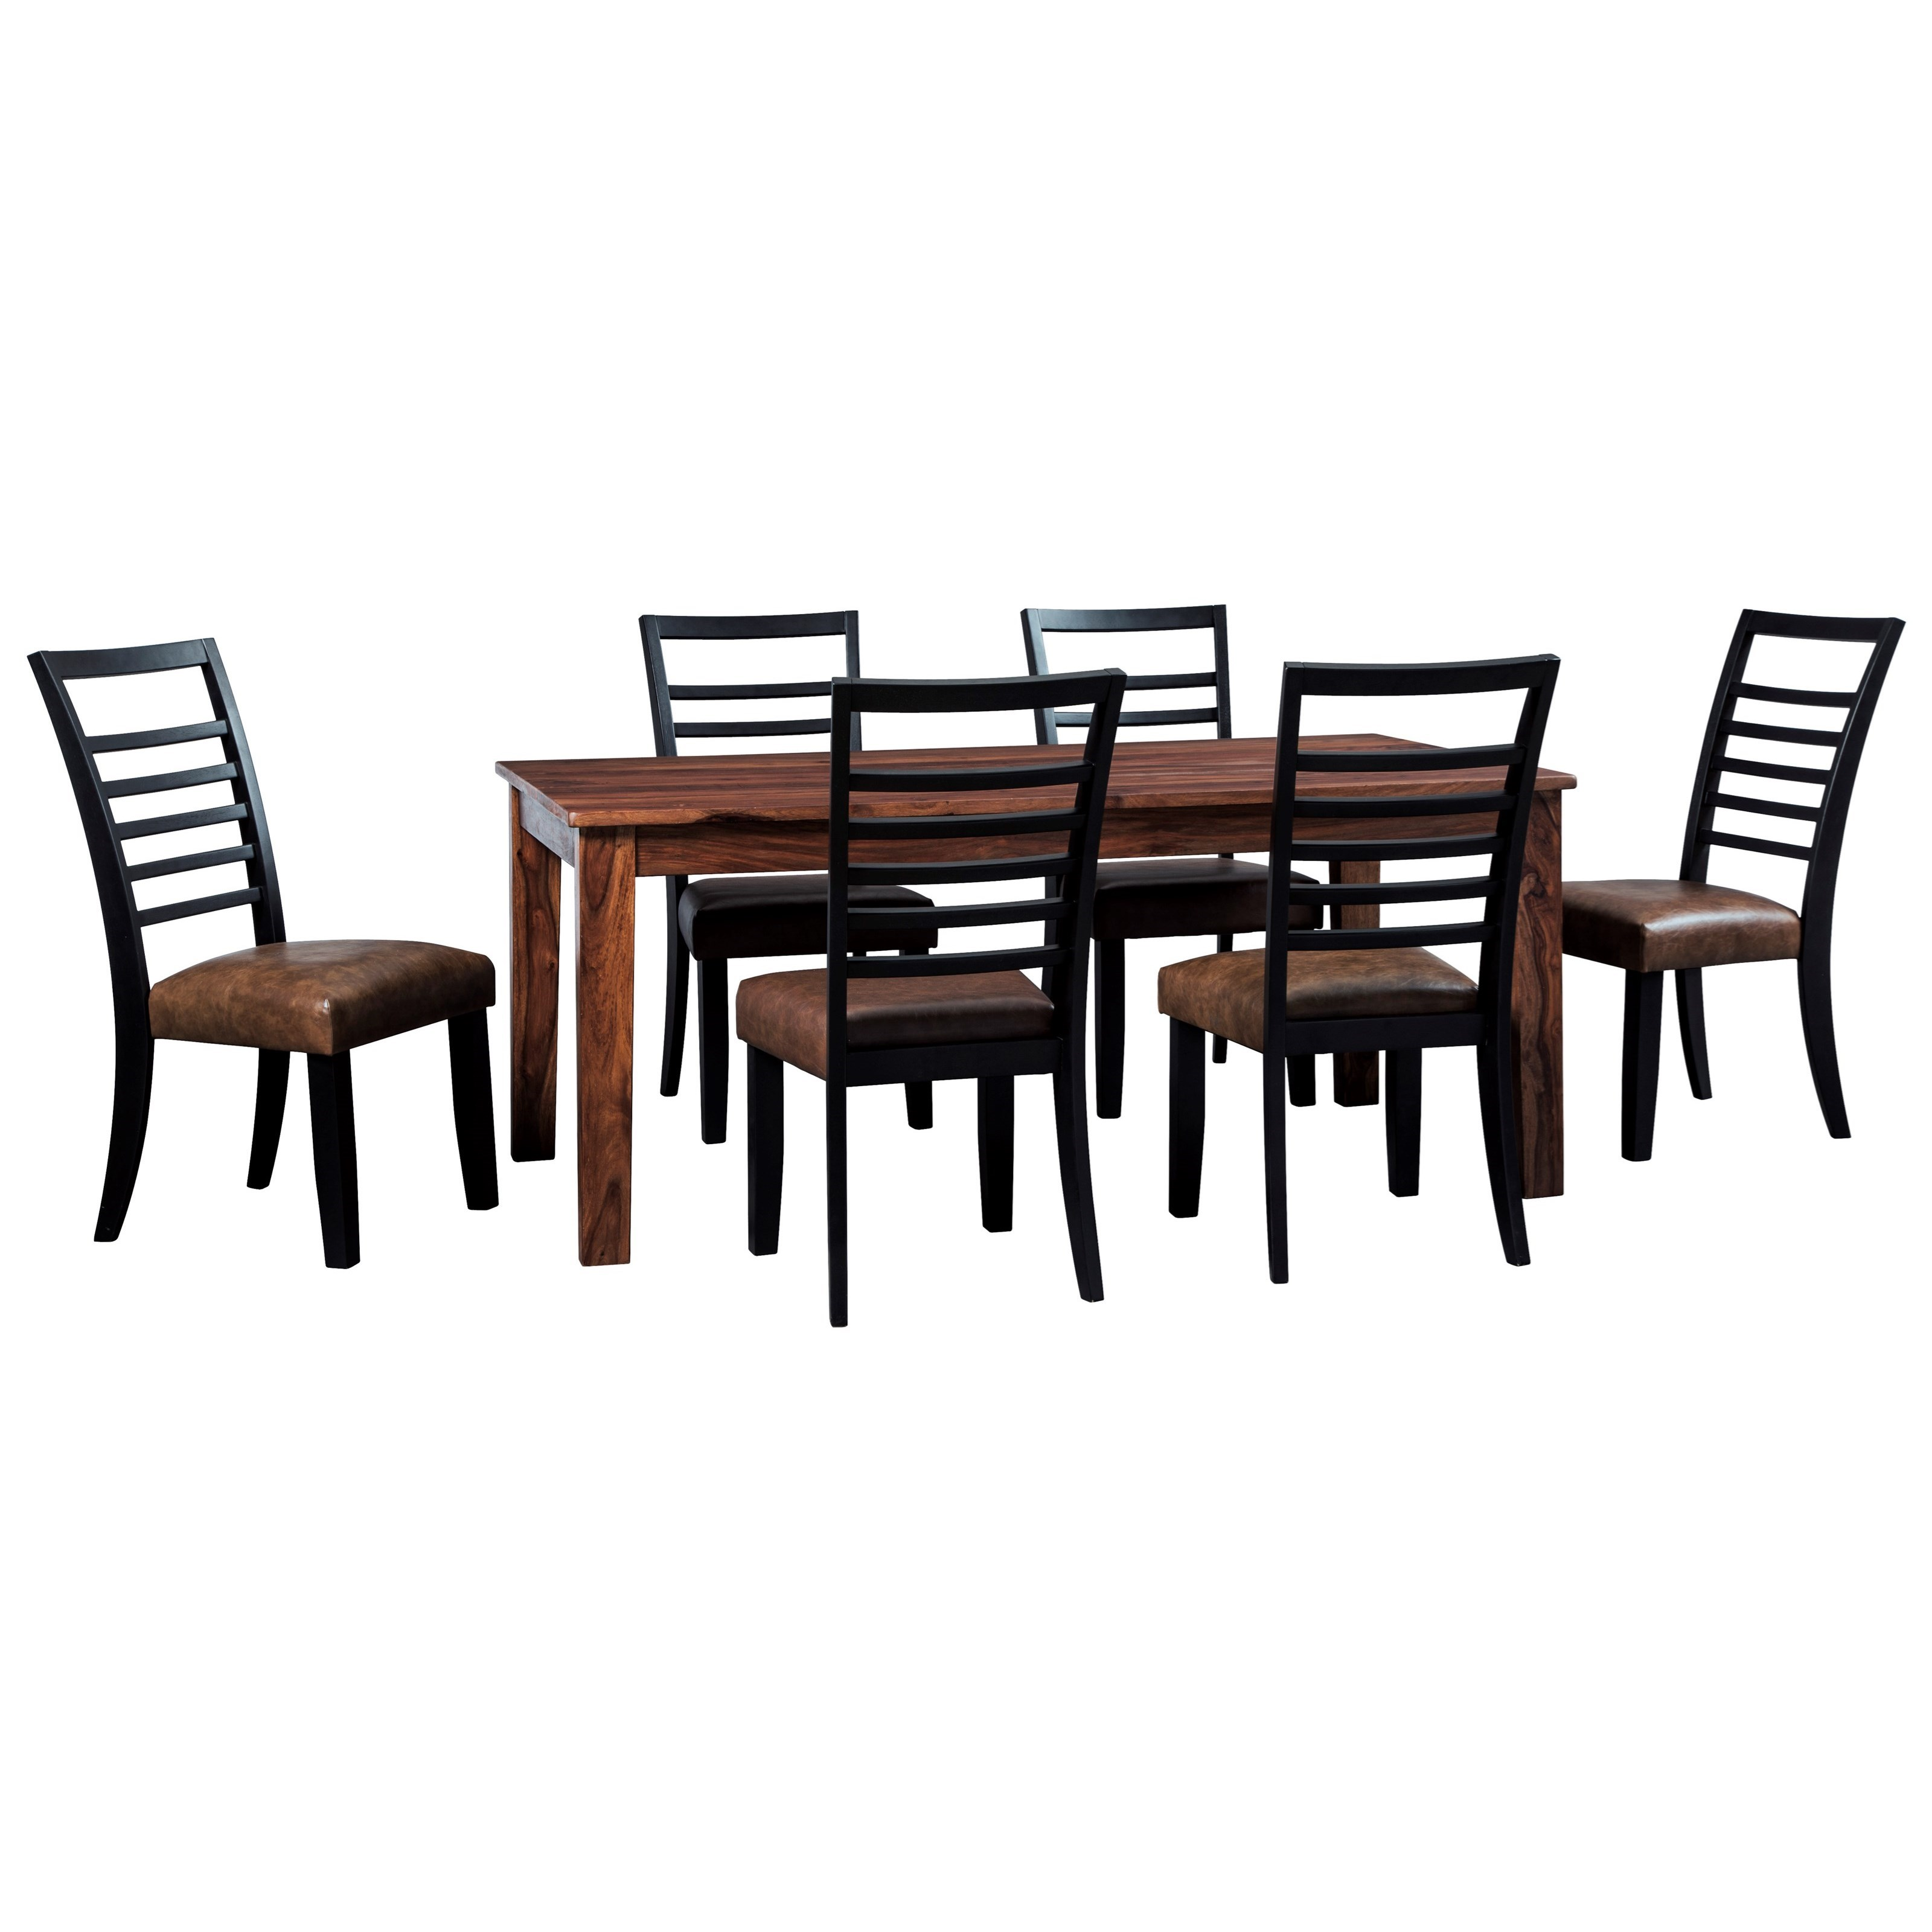 Signature Design By Ashley Manishore Rustic 7 Piece Table Chair Set Value City Furniture